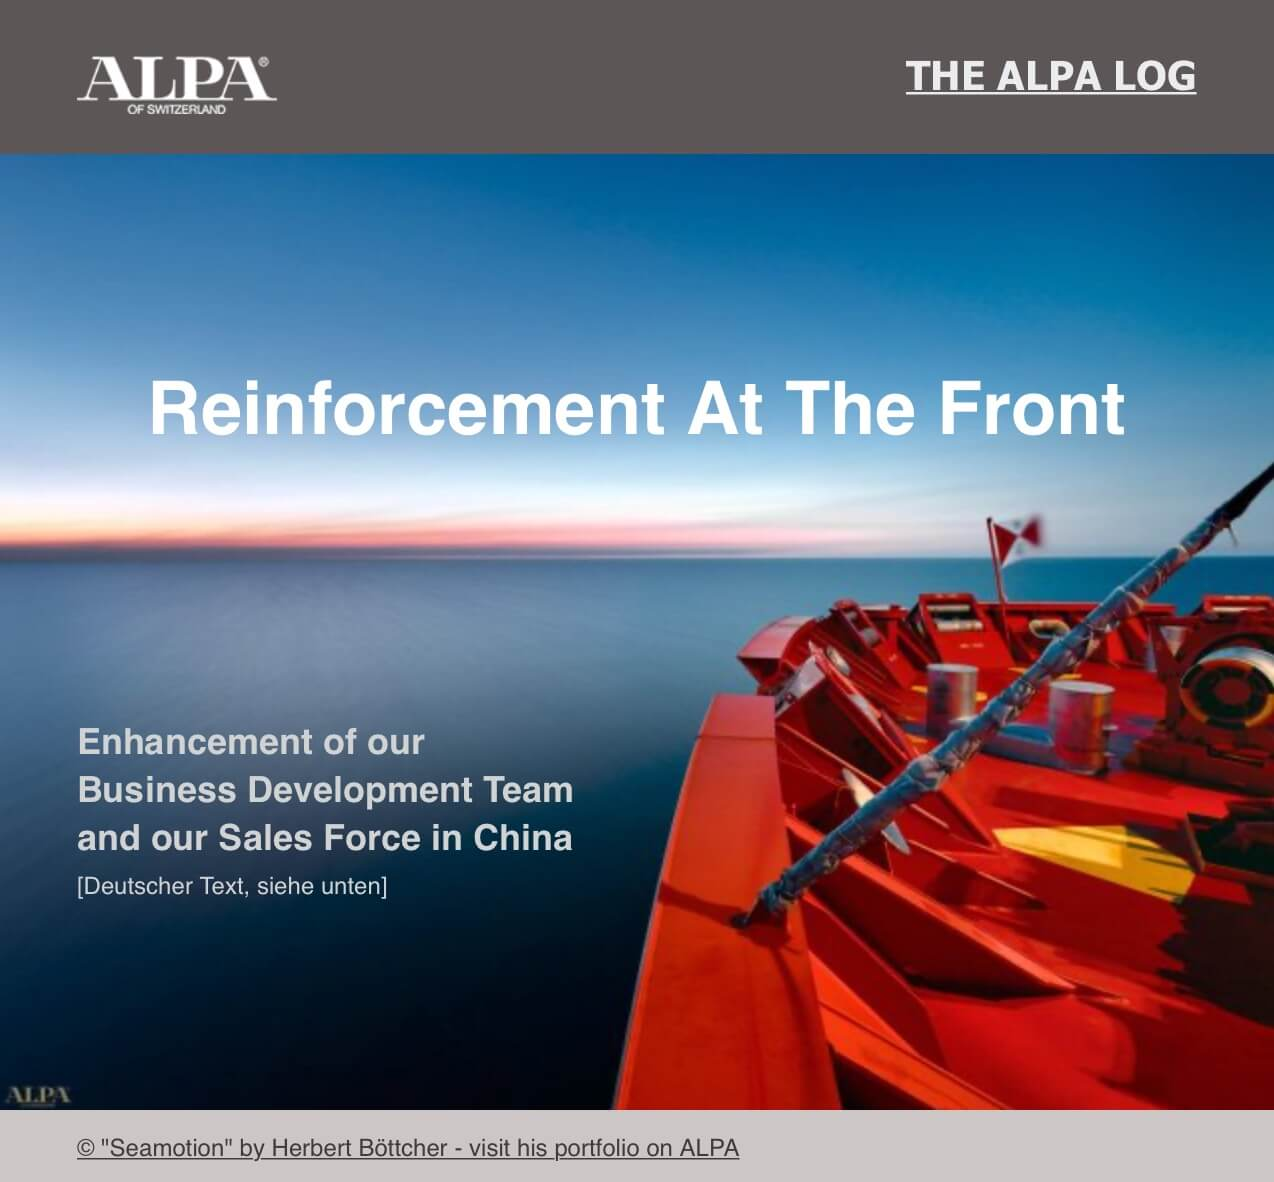 [The ALPA Log] Reinforcement at The Front - Verstärkung an der Front